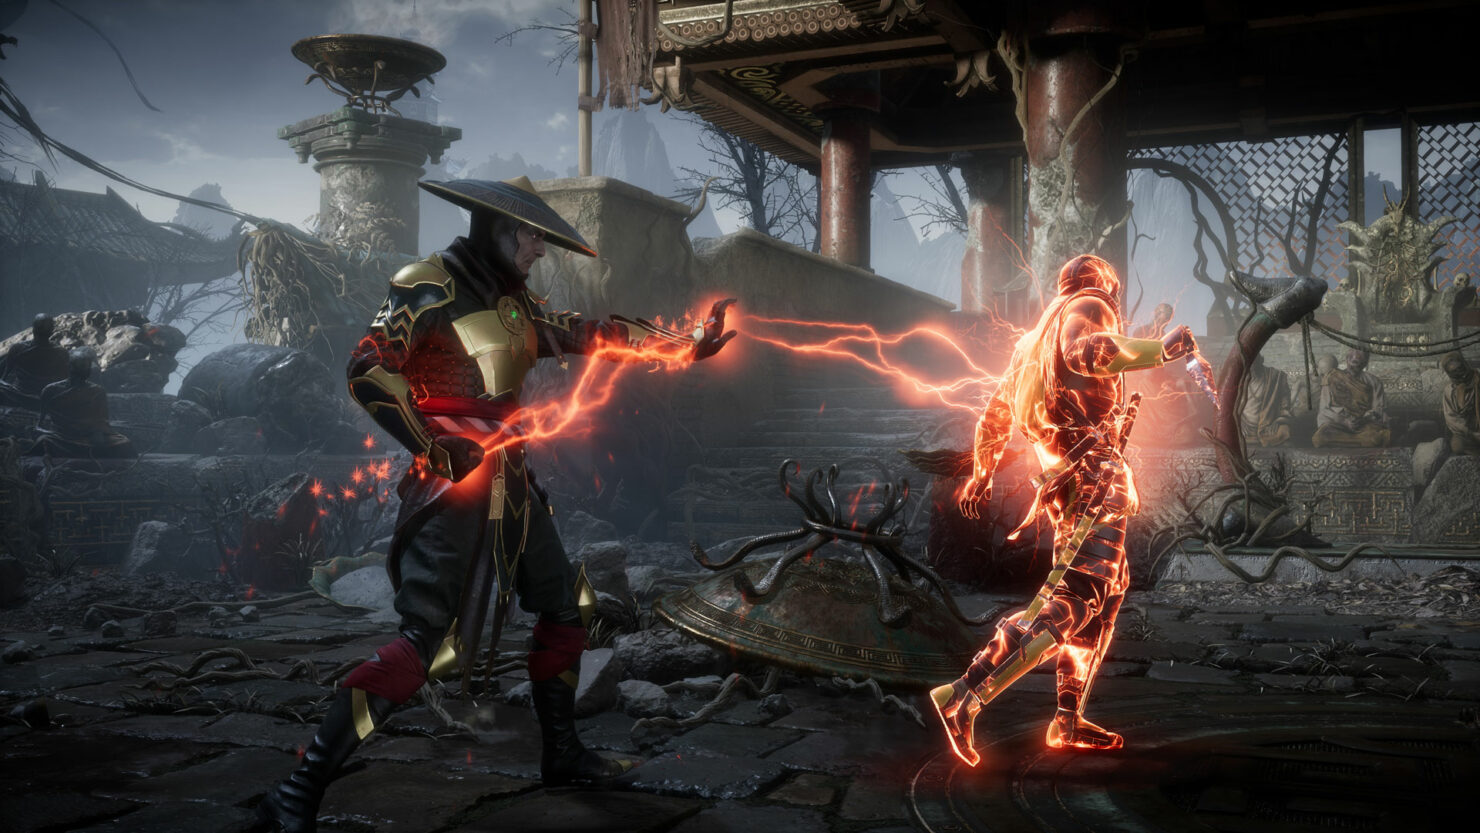 mortal-kombat-11-screenshots-6-1480x833.